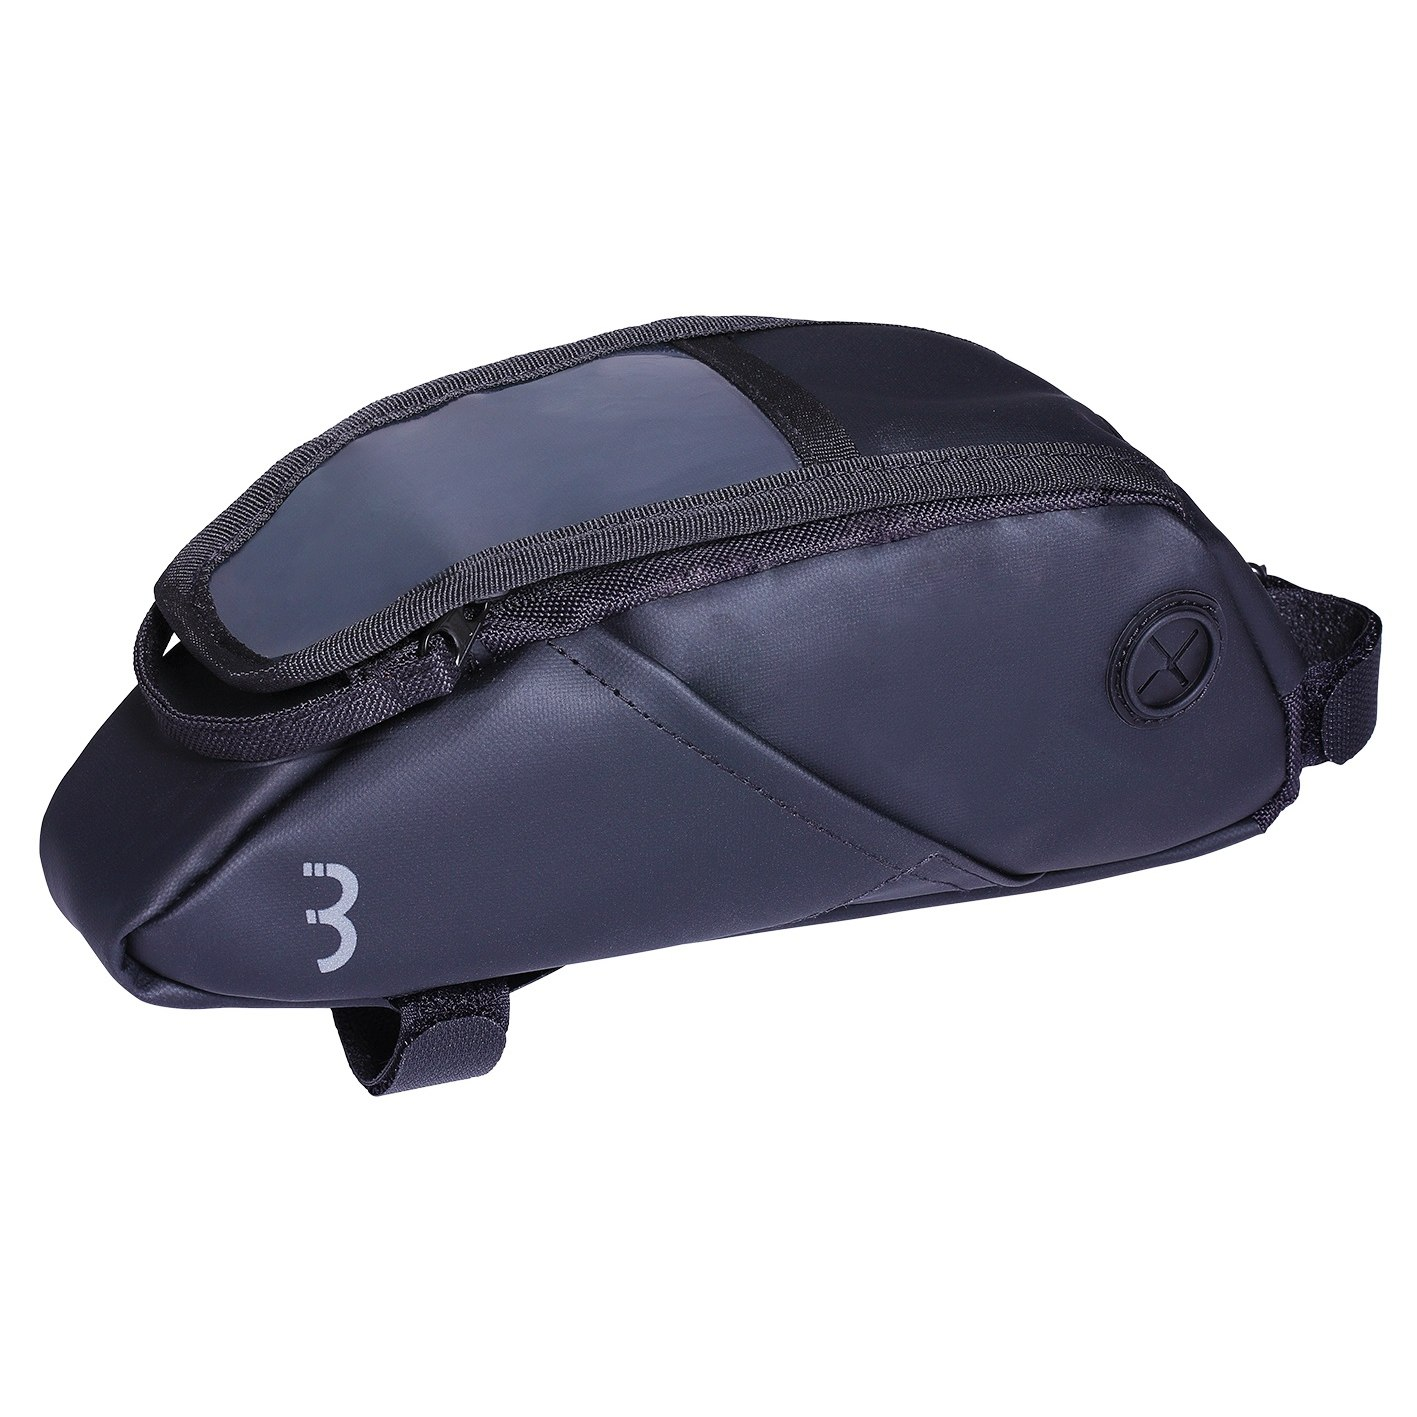 BBB Cycling FuelPack BSB-17 Frame Bag